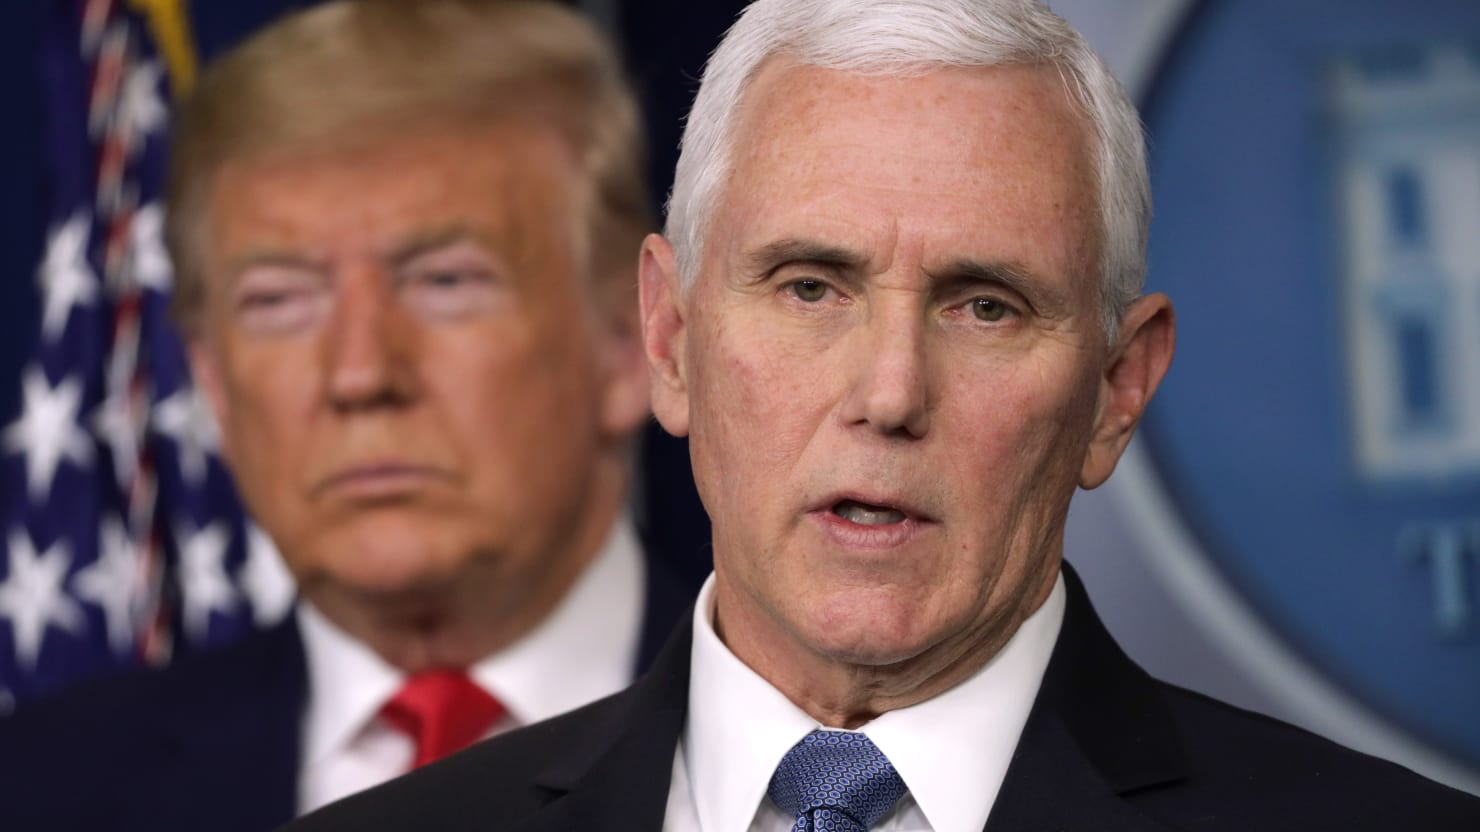 VP Mike Pence Refutes Reports He's Self-Isolating After Aide Tests Positive for Coronavirus 1